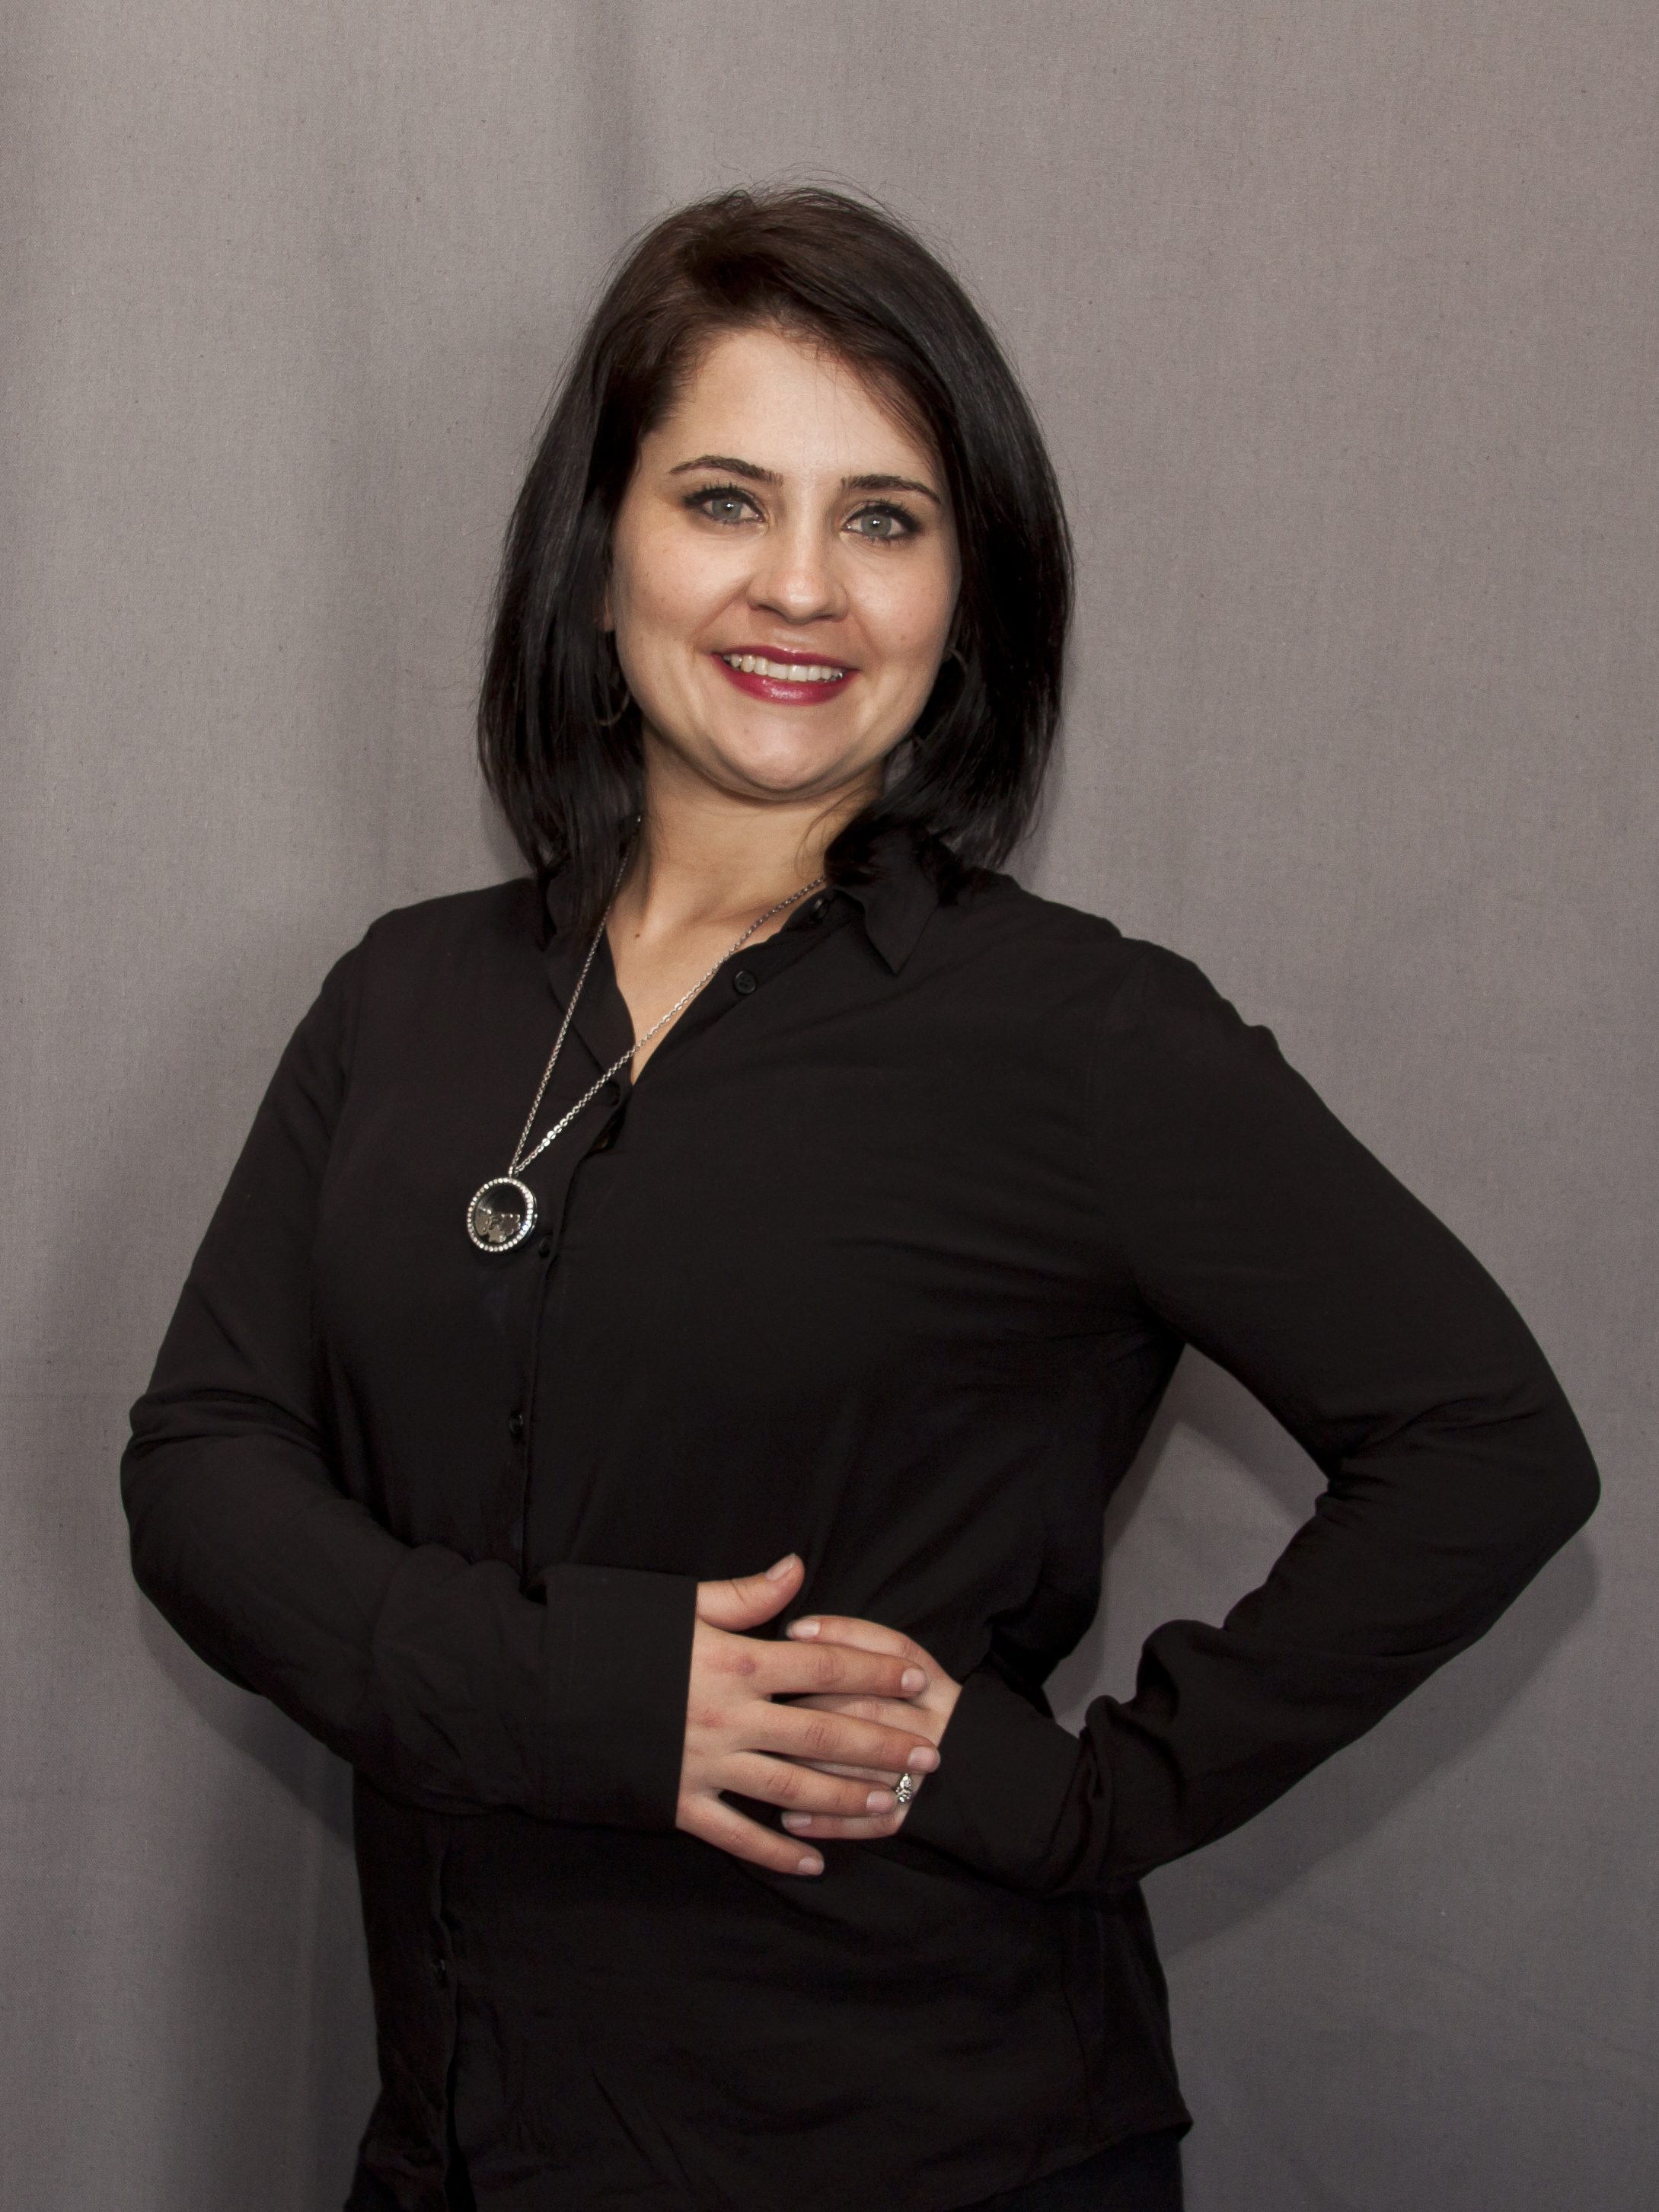 JANNANDI OOSTHUIZEN - ADMINISTRATION MANAGERAdvanced Diploma in TourismManagement (CA)8 Years in Administration